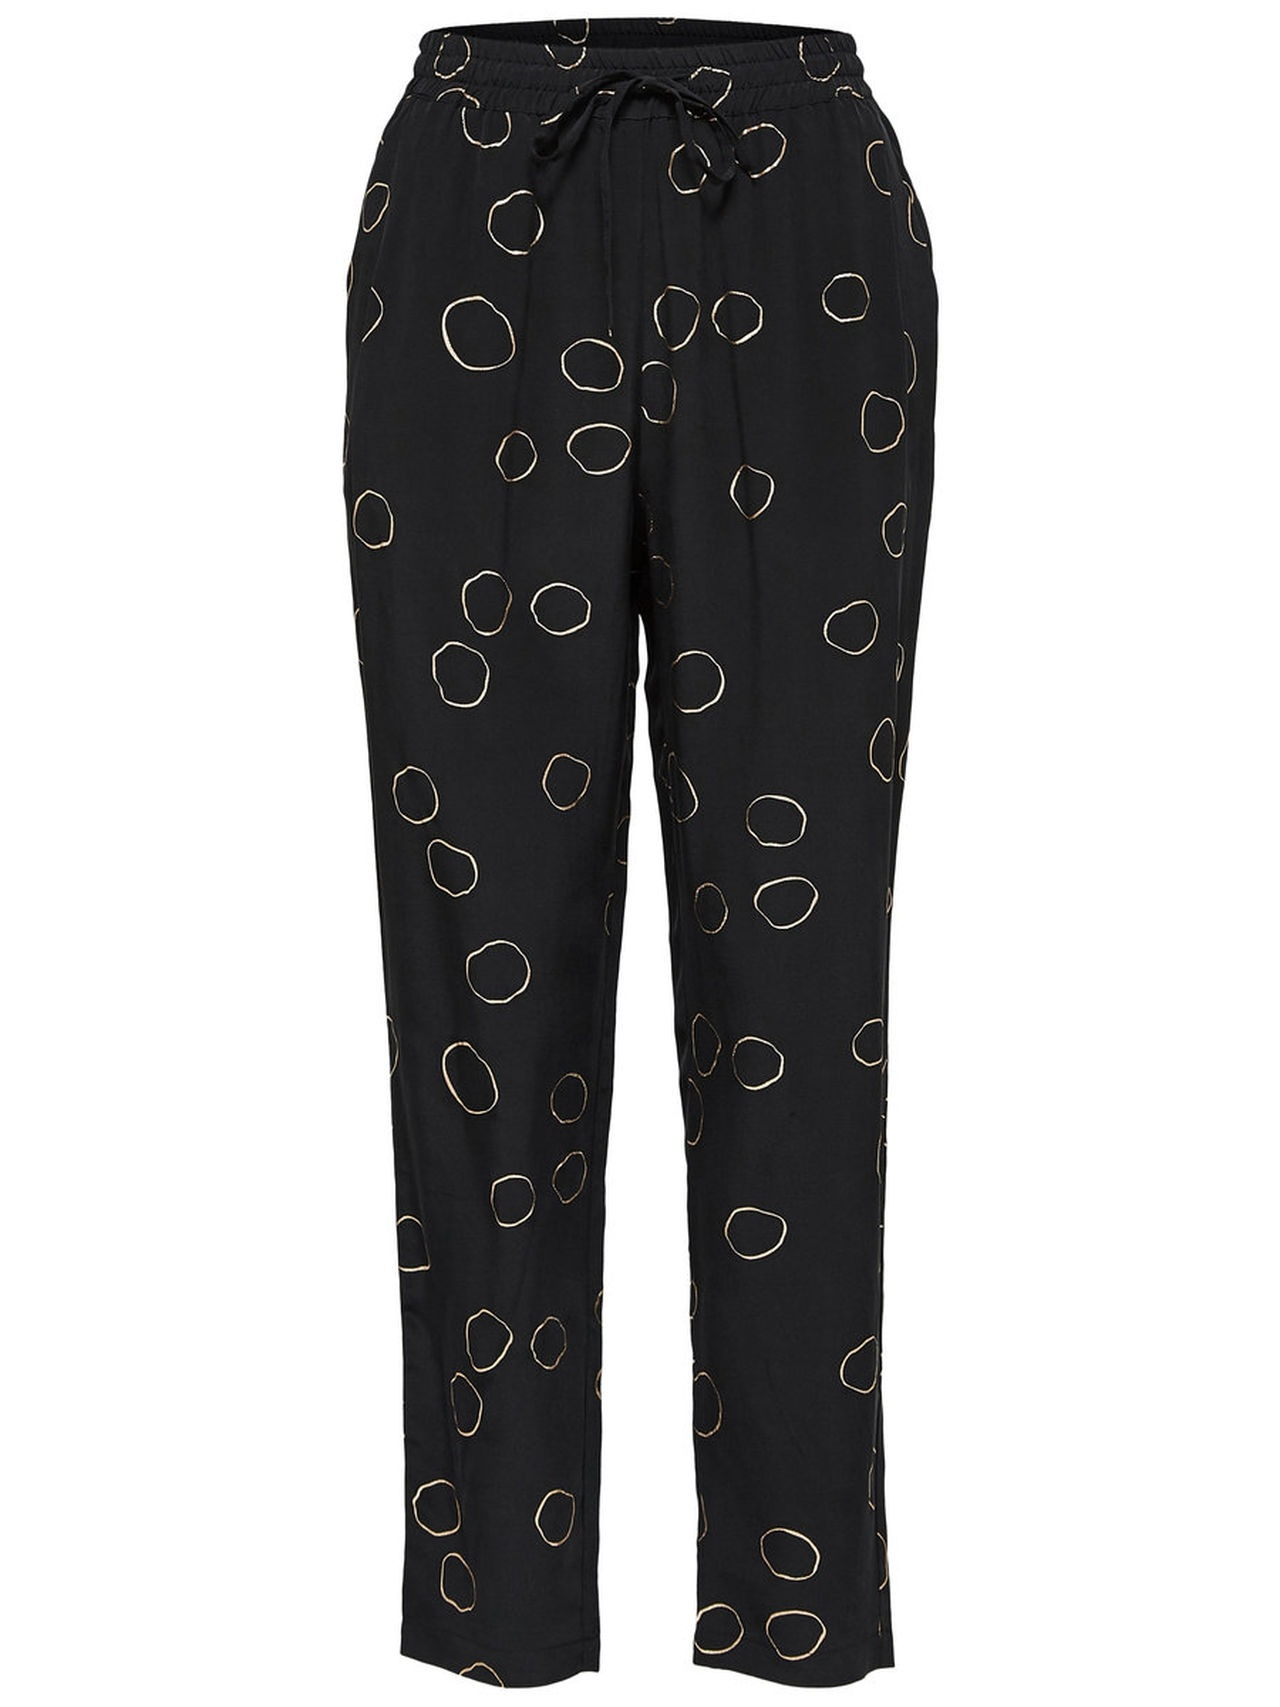 SELECTED Cropped – Trousers Kvinna Svart